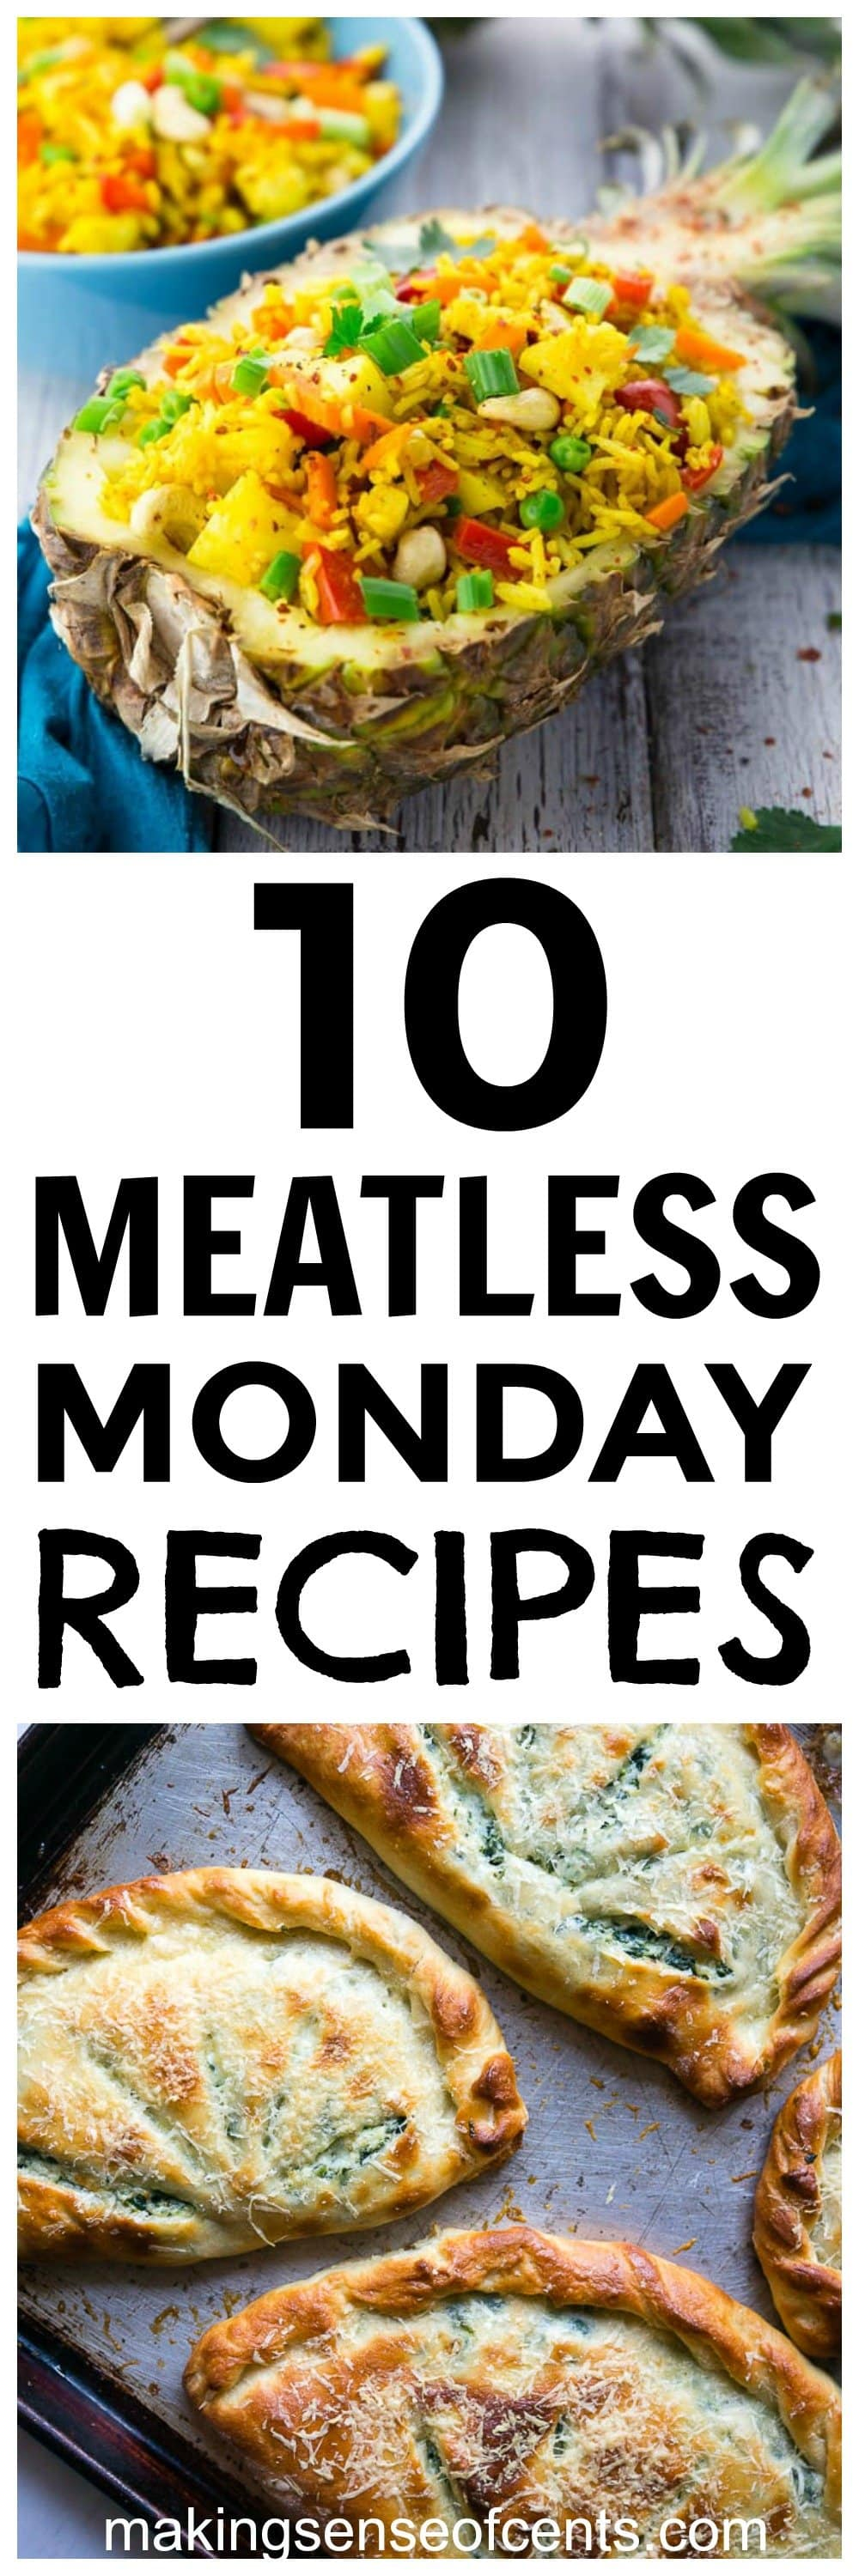 Are you looking for meatless Monday recipes? Here are healthy meatless meals for dinner, crockpot, they're easy ideas, and some great vegan ideas as well! #meatlessmonday #meatlessrecipes #meatlessmondayrecipes